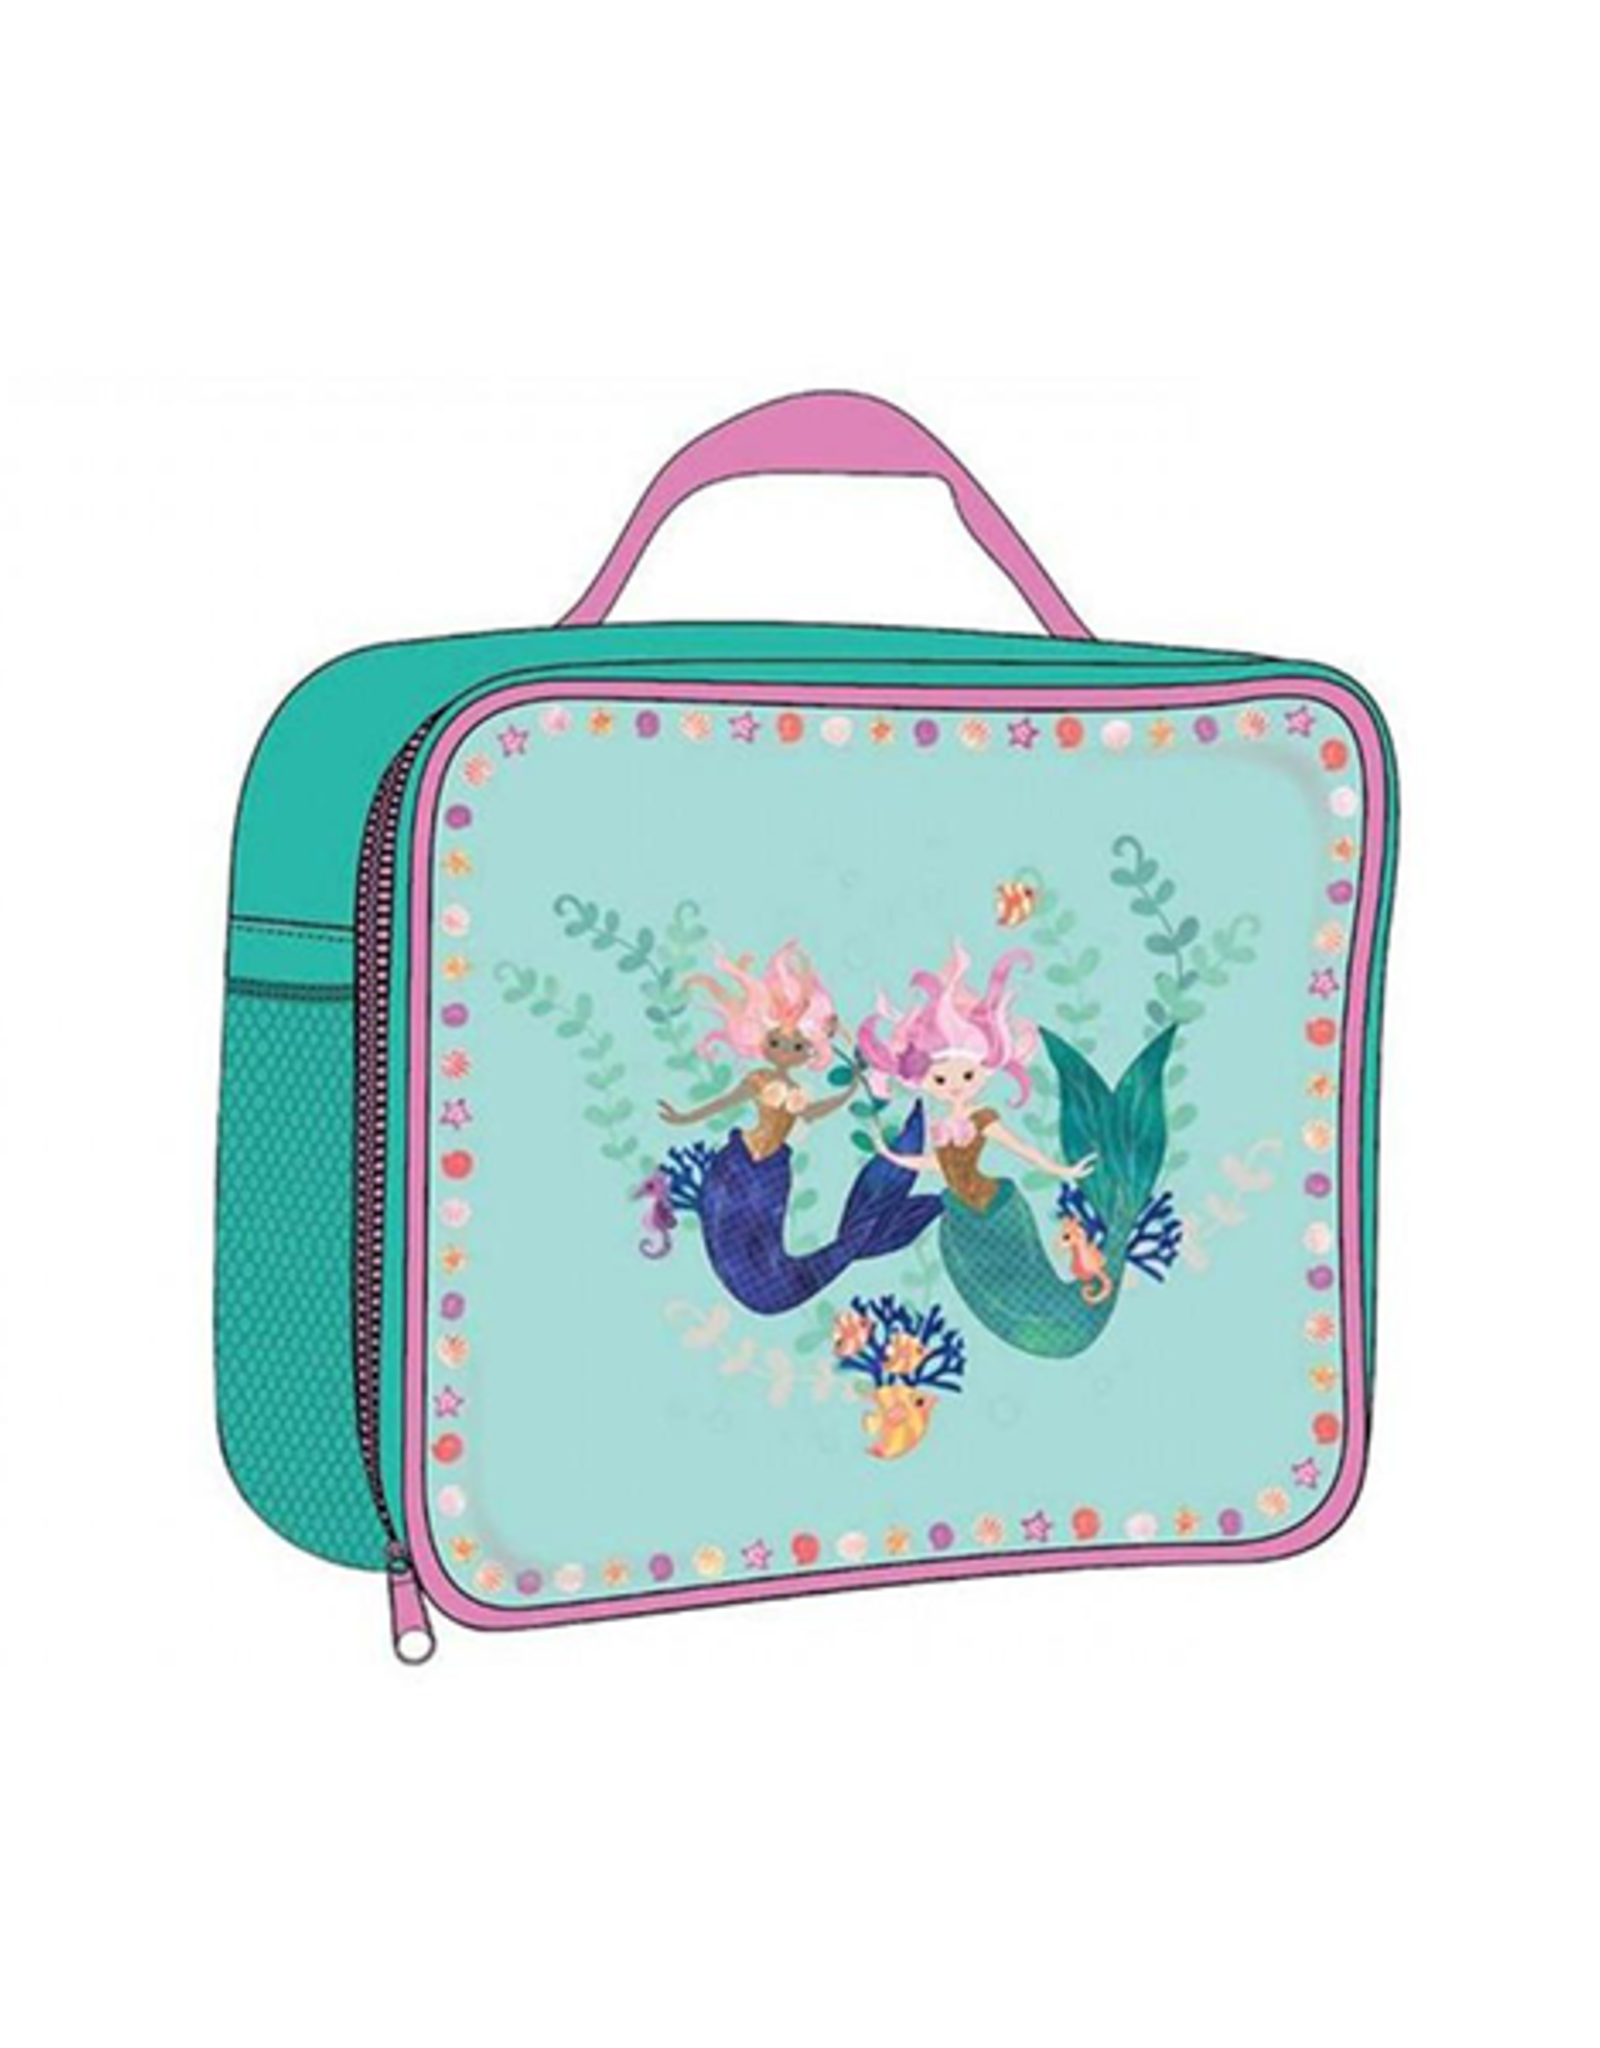 Mermaids Insulated Lunch Bag